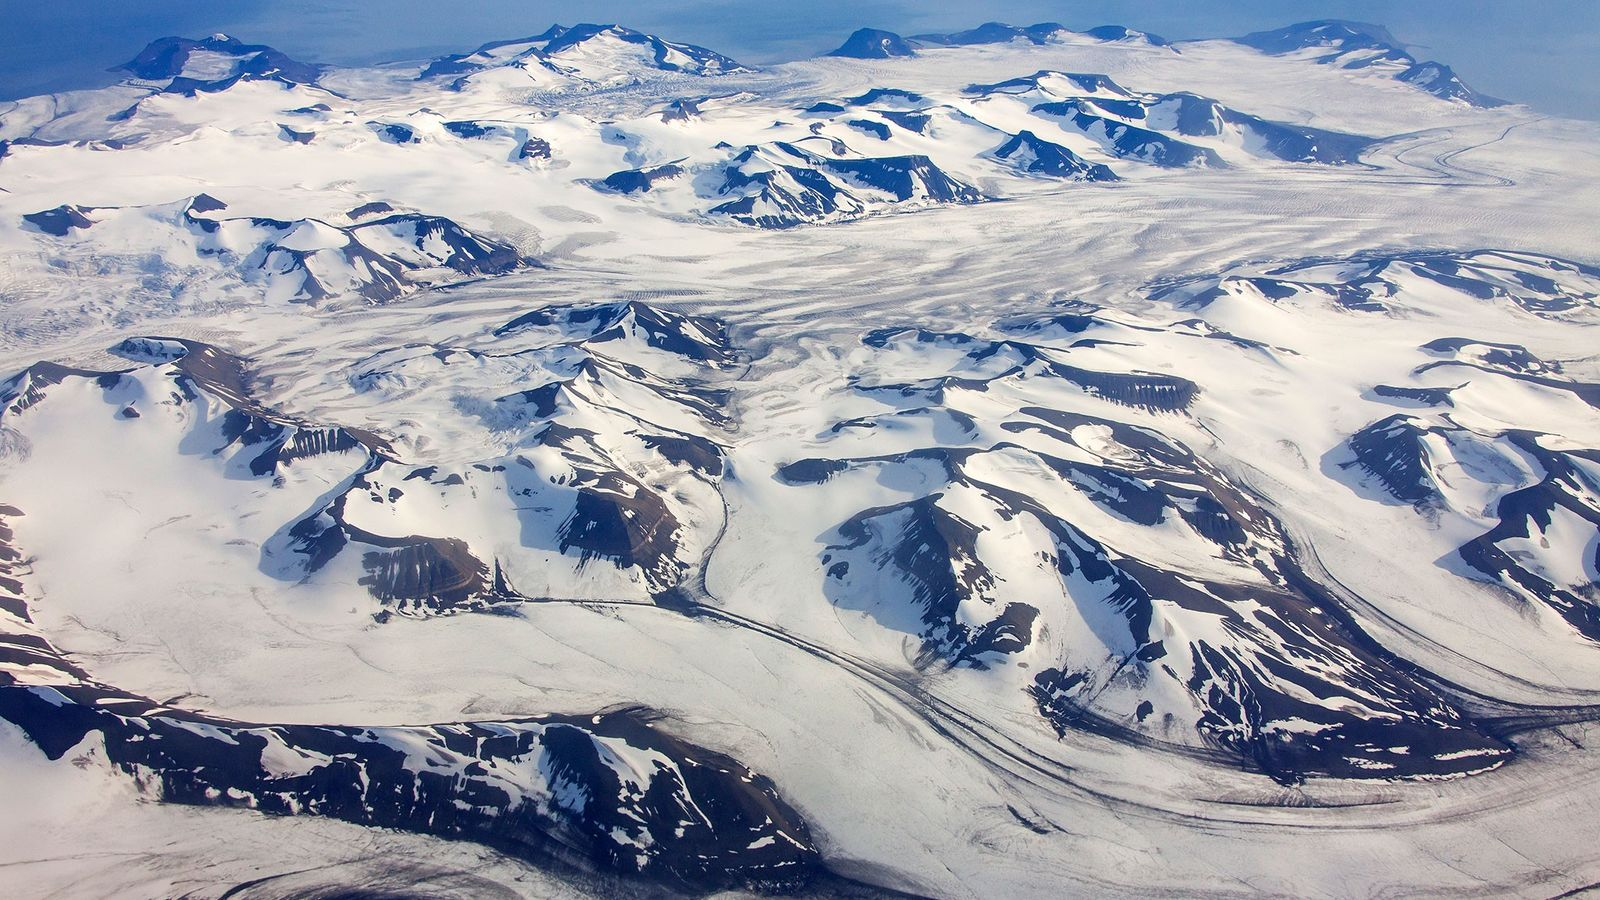 An aerial view of mountainous landscape of glaciers in Norway that could contain microplastics in their ...